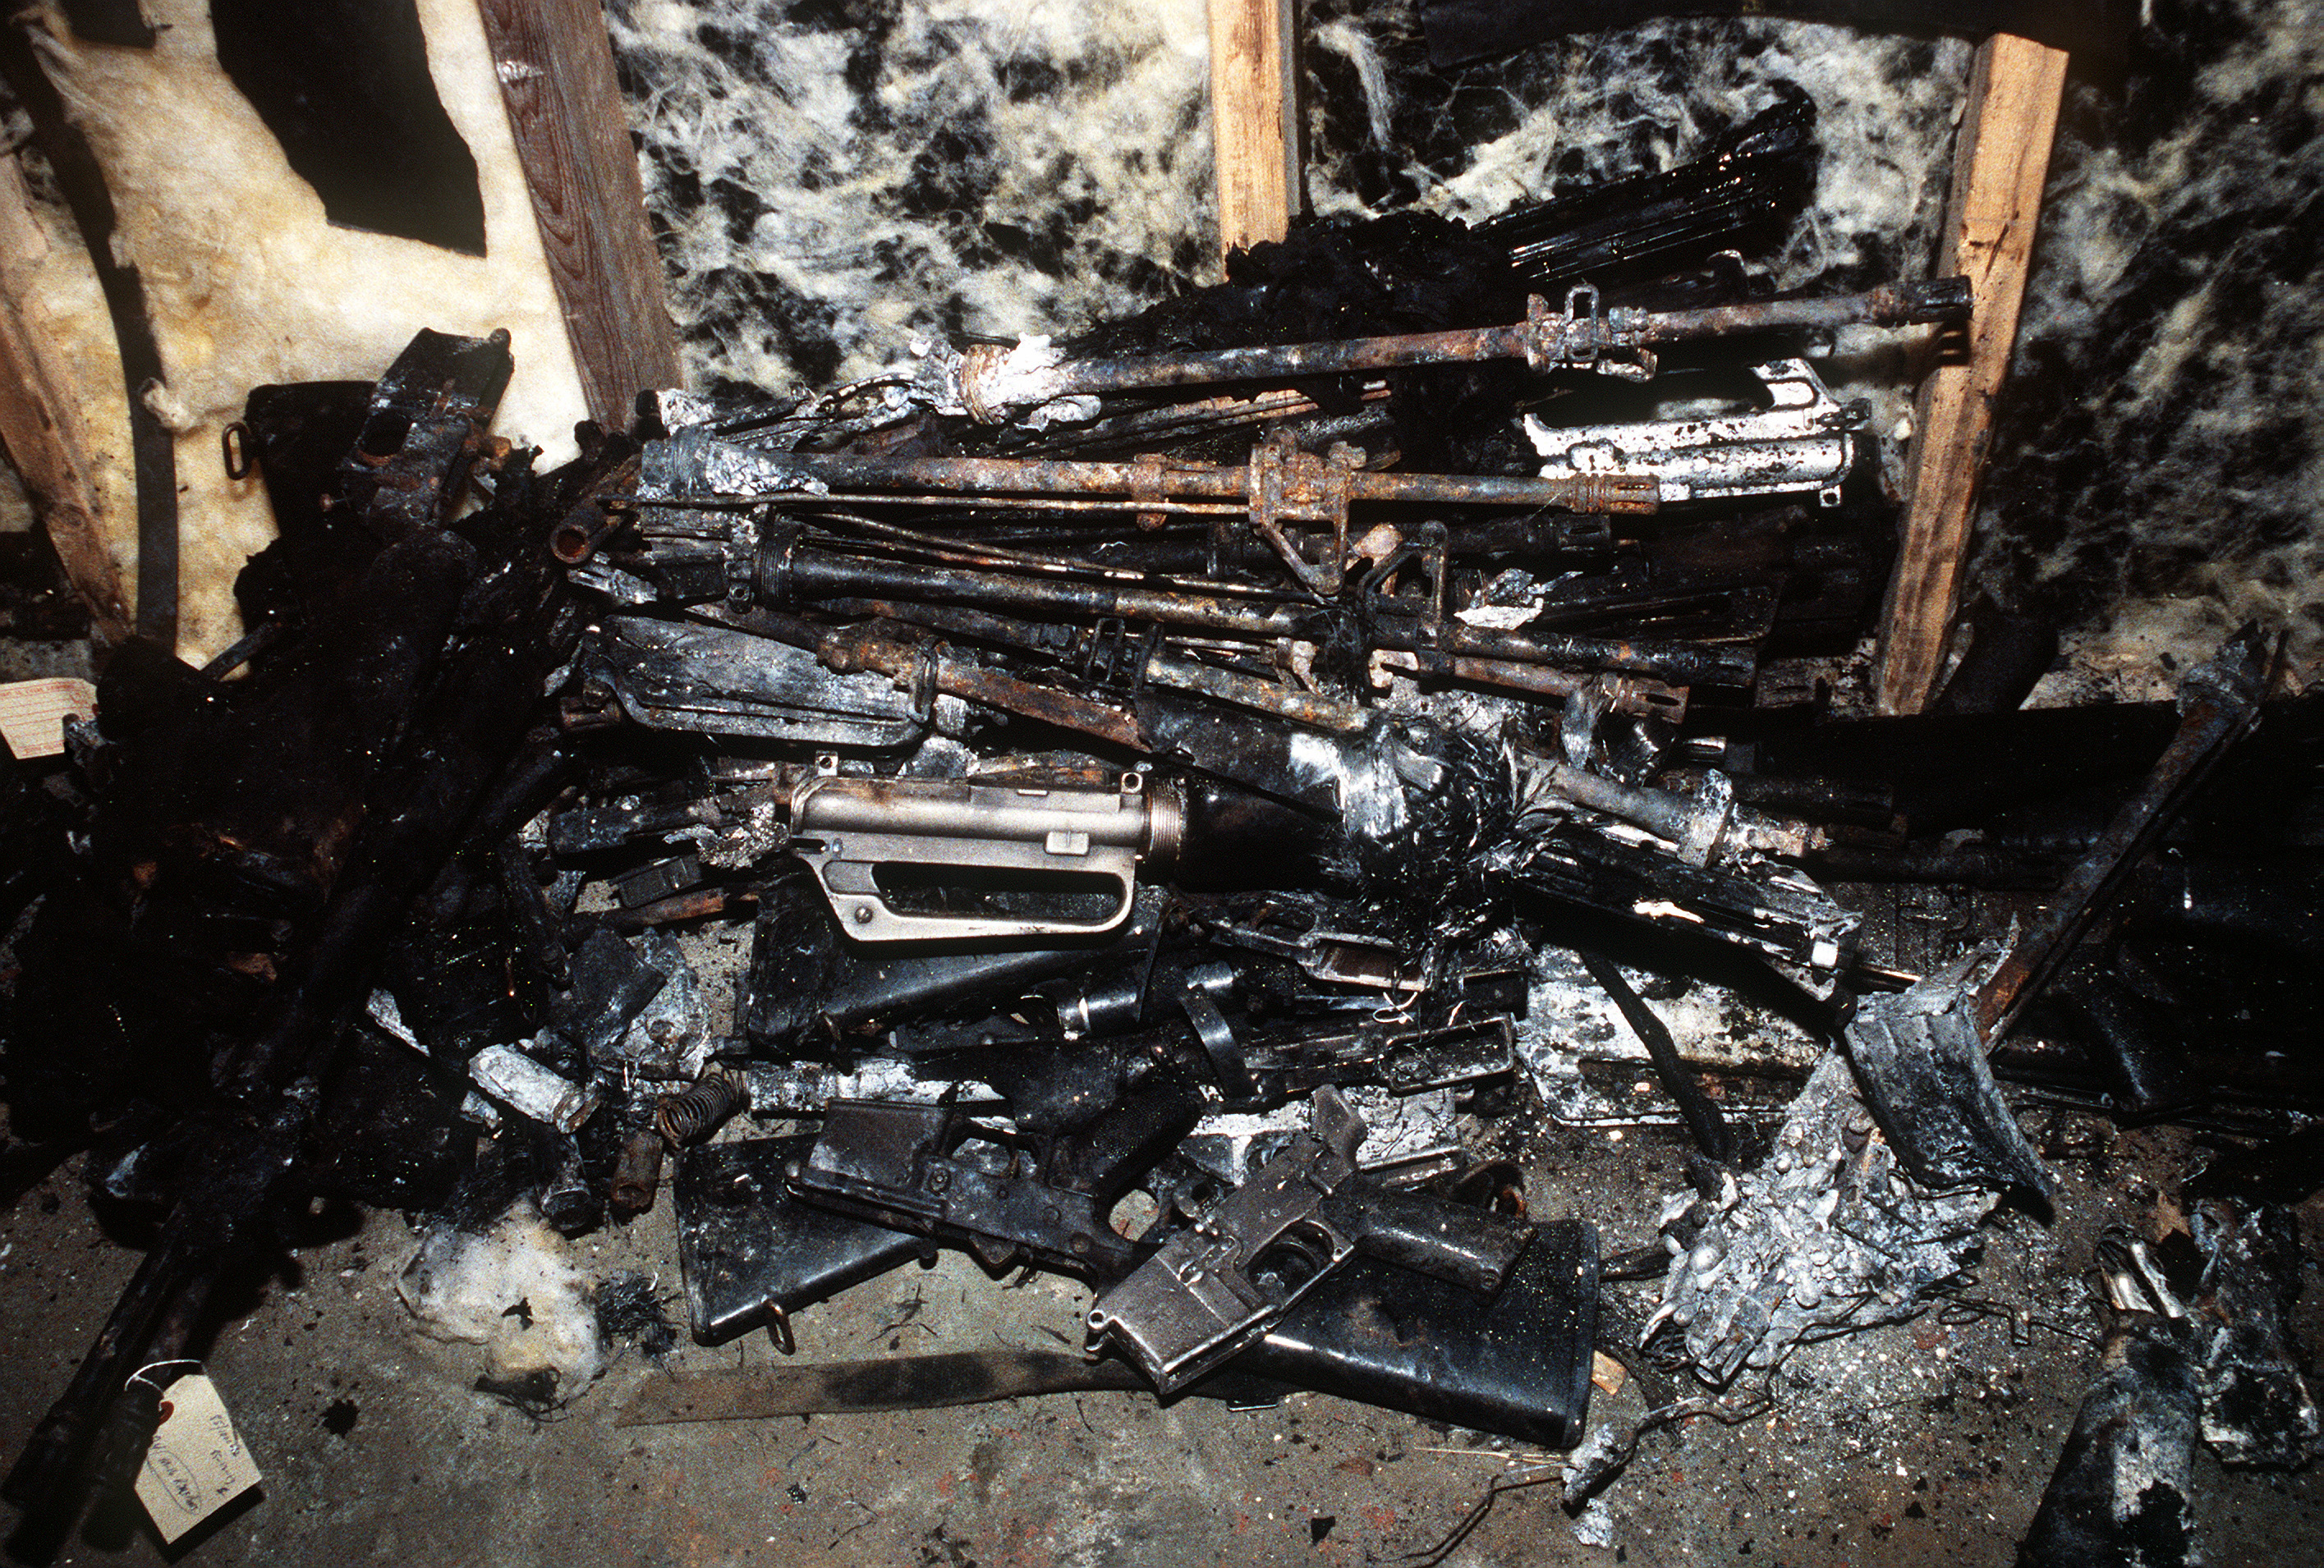 File:Charred weapons found in the wreckage of Arrow Air Flight 1285.jpg